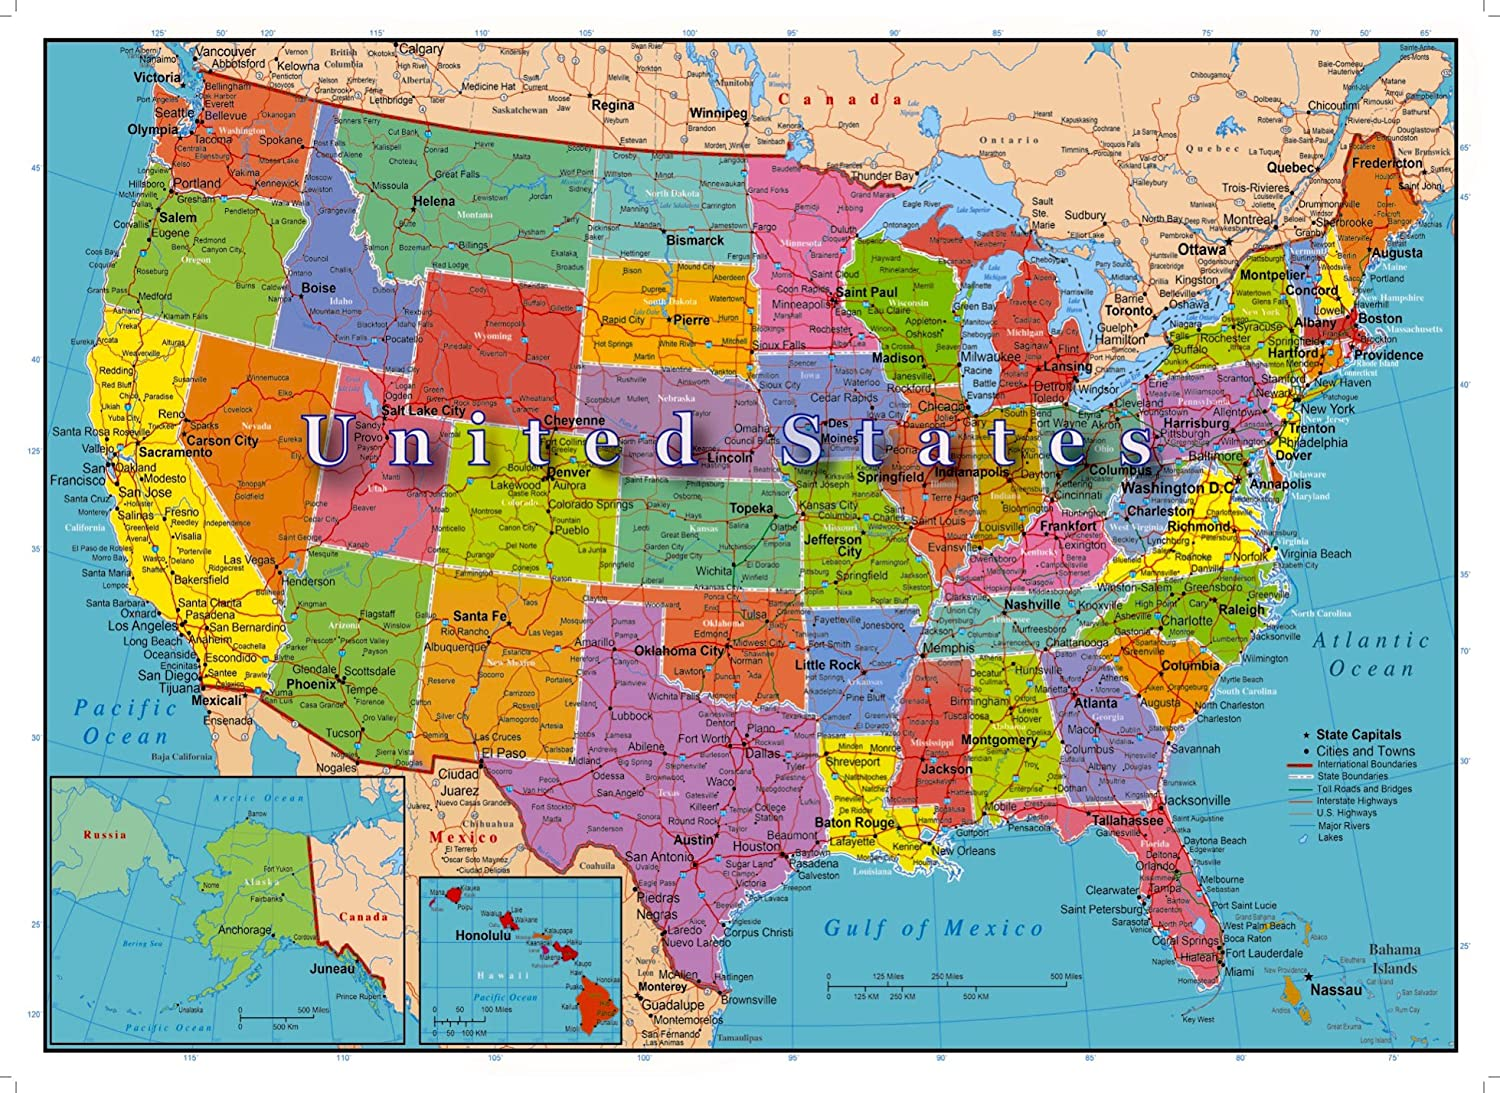 The Map Of America States.United States Of America Map 1000 Piece Jigsaw Puzzle Highways Rivers State Capitals